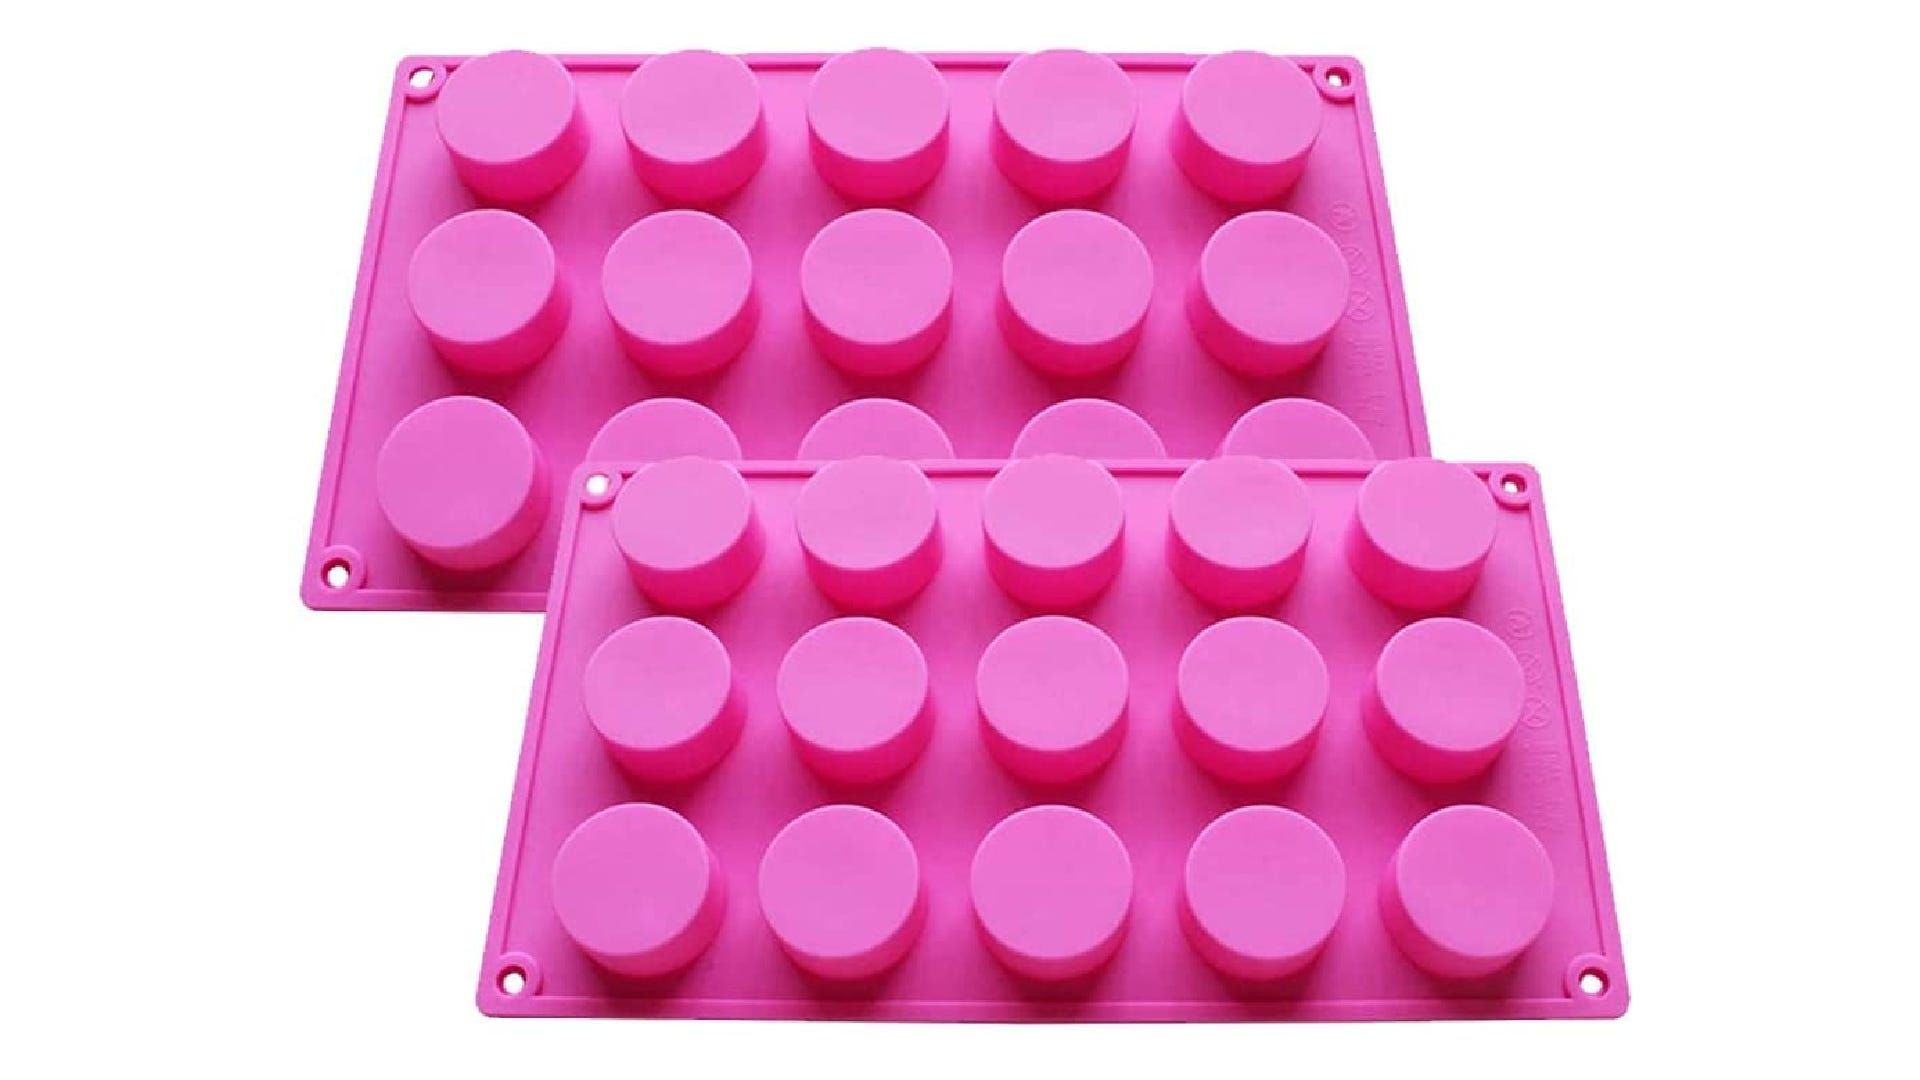 two bright pink silicone molds with small round cavities